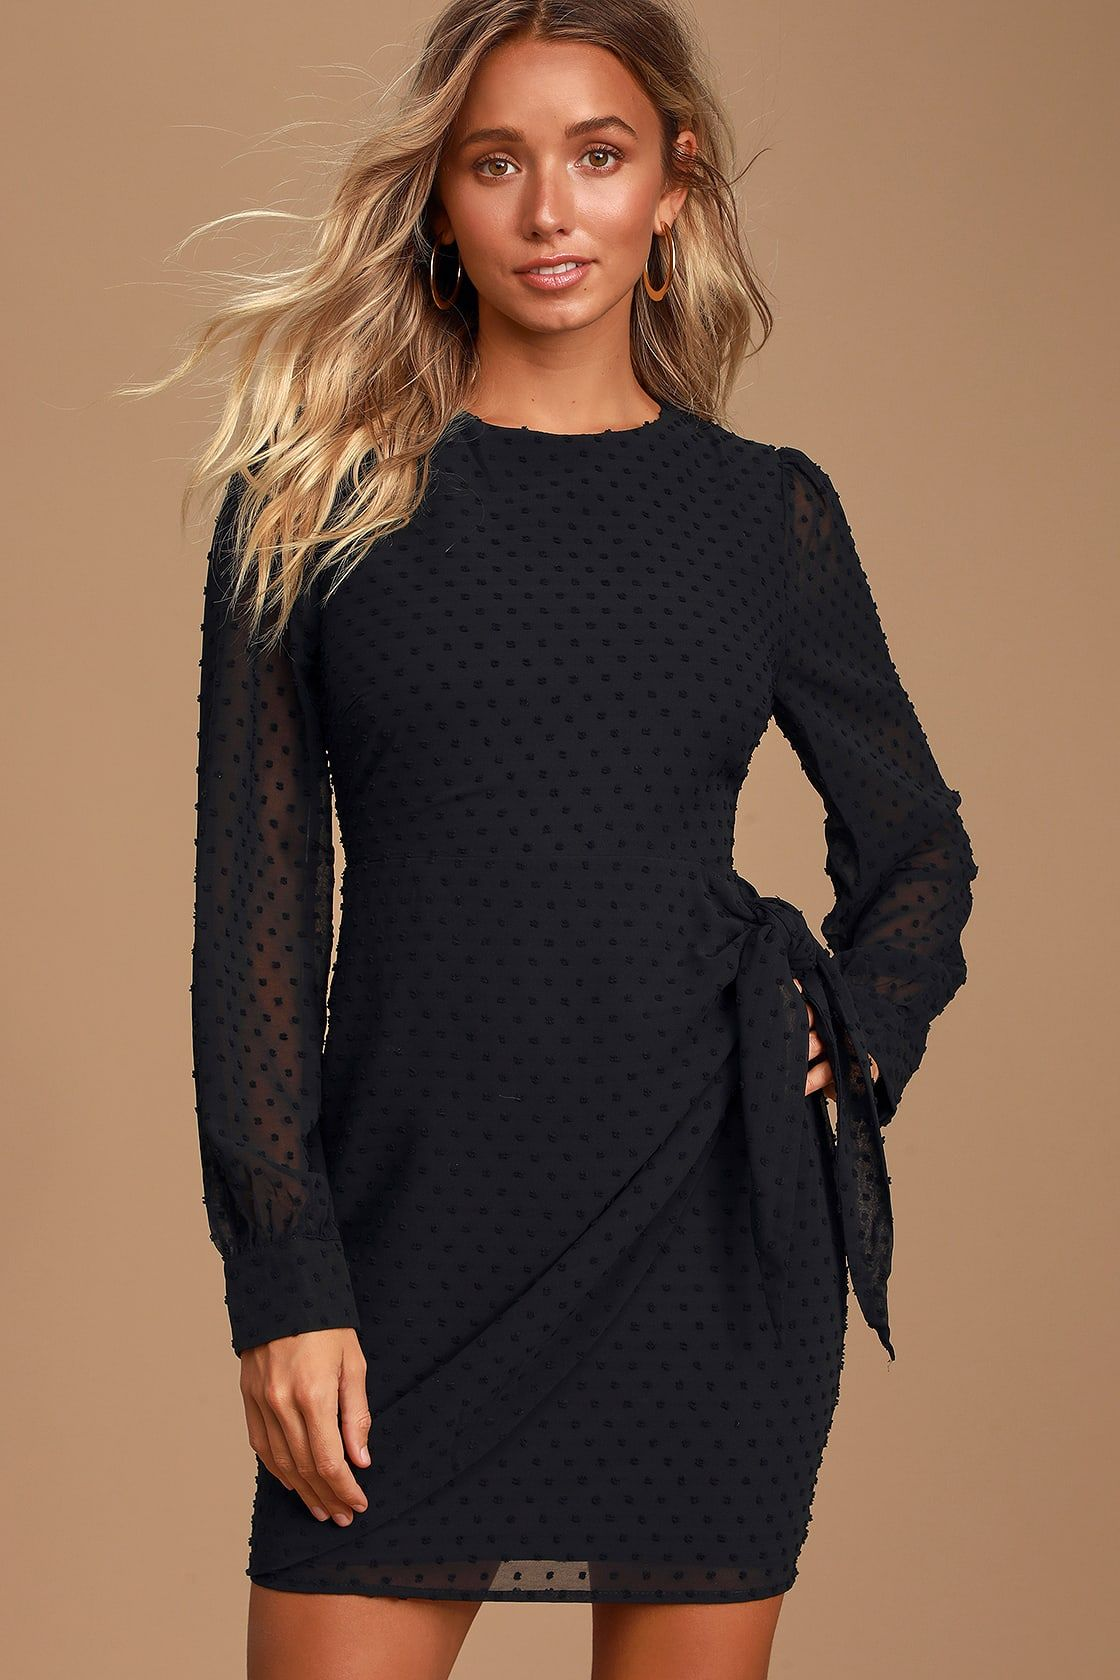 Much Love Black Swiss Dot Long Sleeve Tie Front Mini Dress